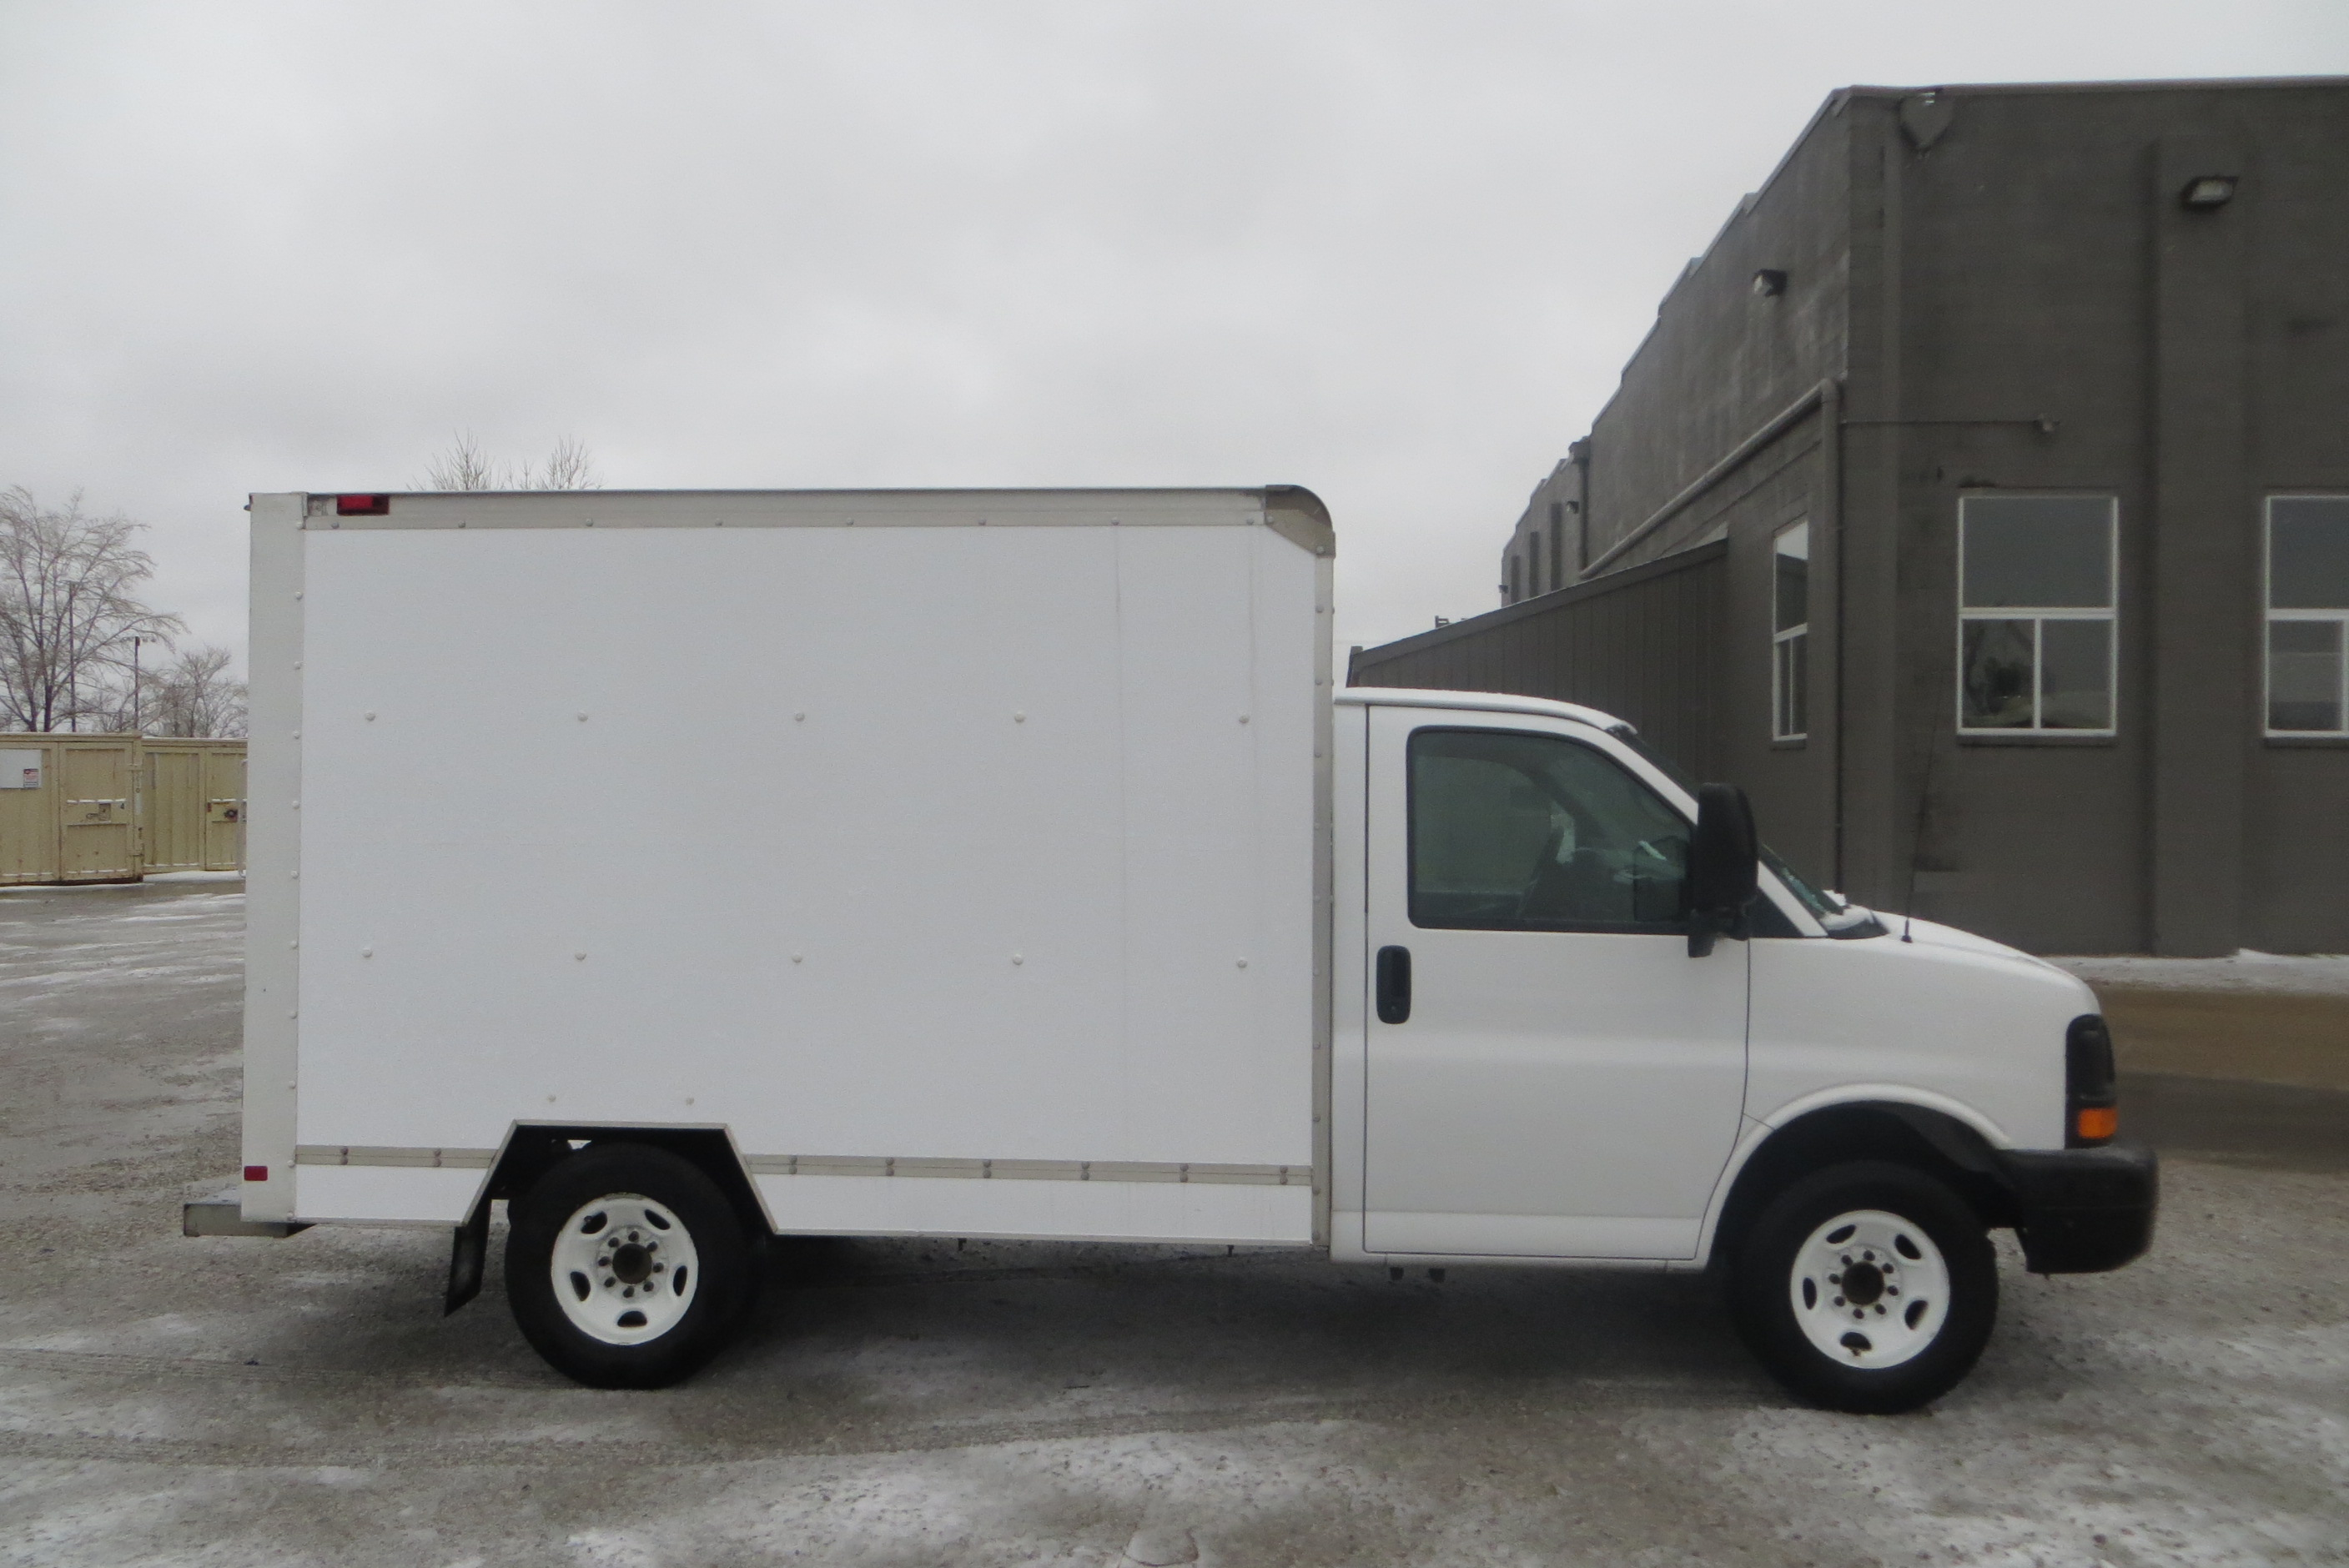 Mag11282 2008 Gmc Box Truck 10 Ft Mag Trucks